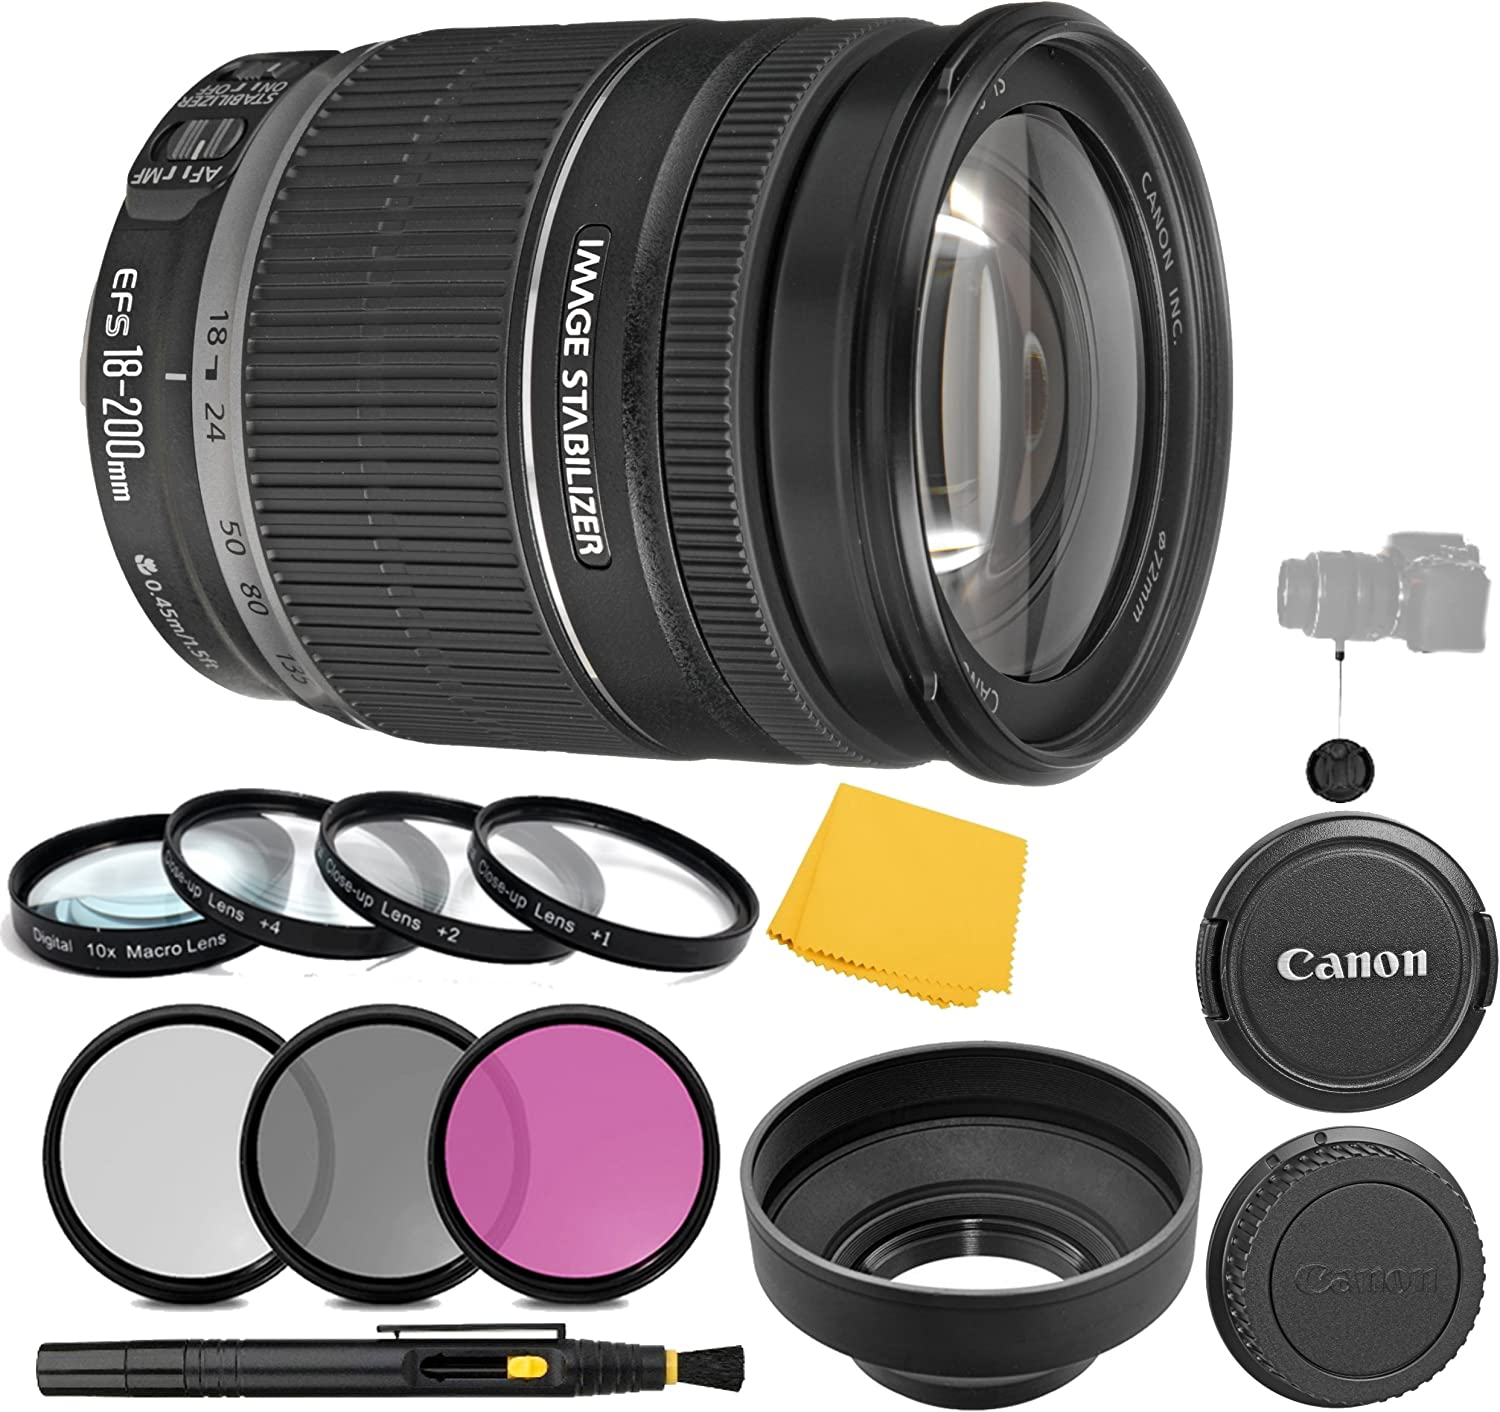 Canon EF-S 18-200mm f/3.5-5.6 is Lens + 3 Piece Filter Set + 4 Piece Close Up Macro Filters + Lens Cleaning Pen + Pro Accessory Bundle - 18-200mm is: Image Stabilizer Lens - International Version